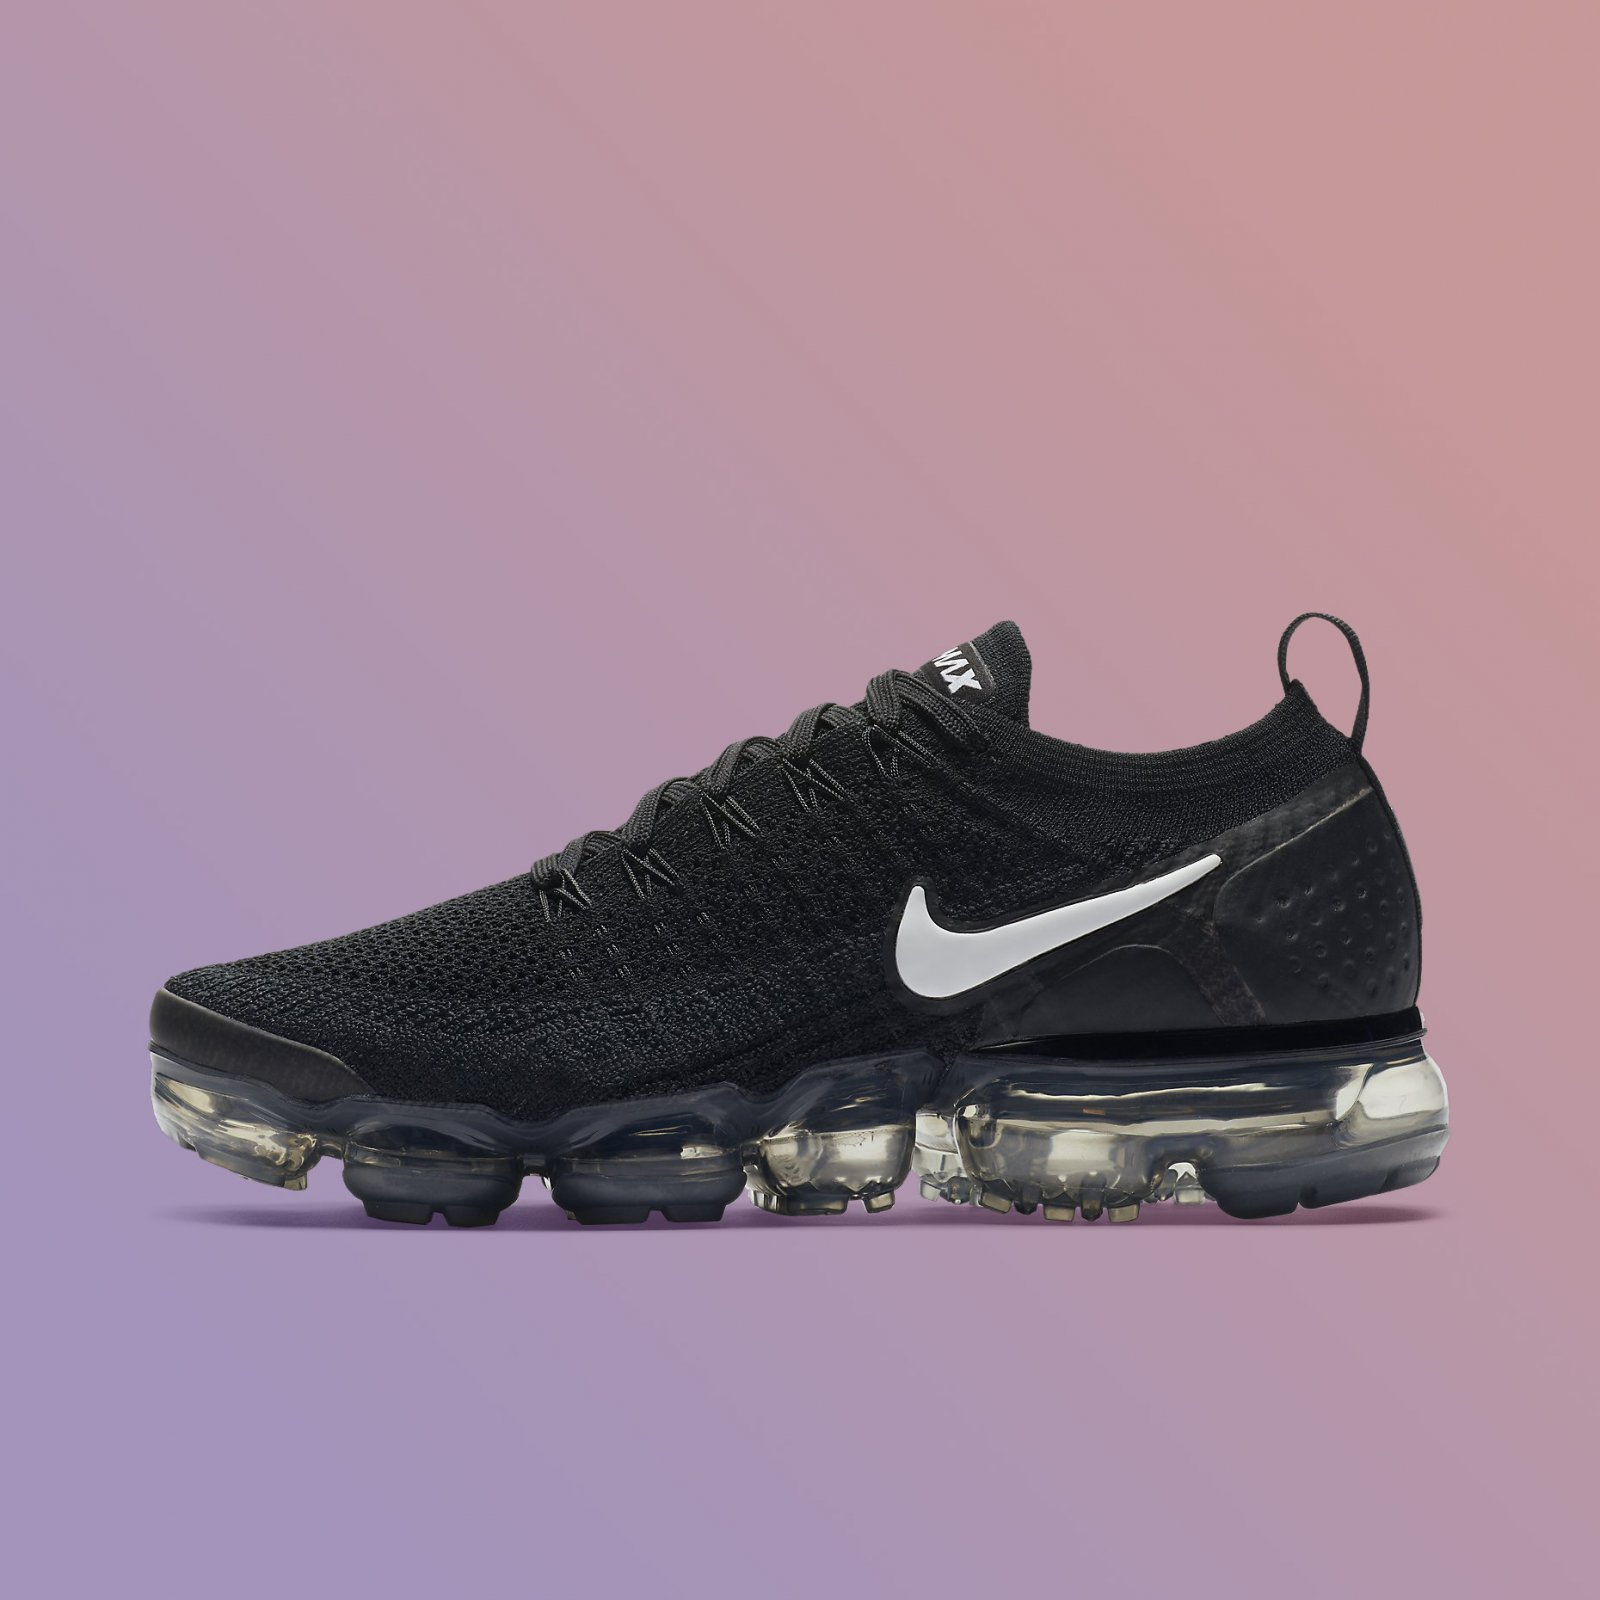 3957f5733c Details about Nike Women's Air Vapormax Flyknit 2.0 Black White Grey  Running Shoes 942843-001